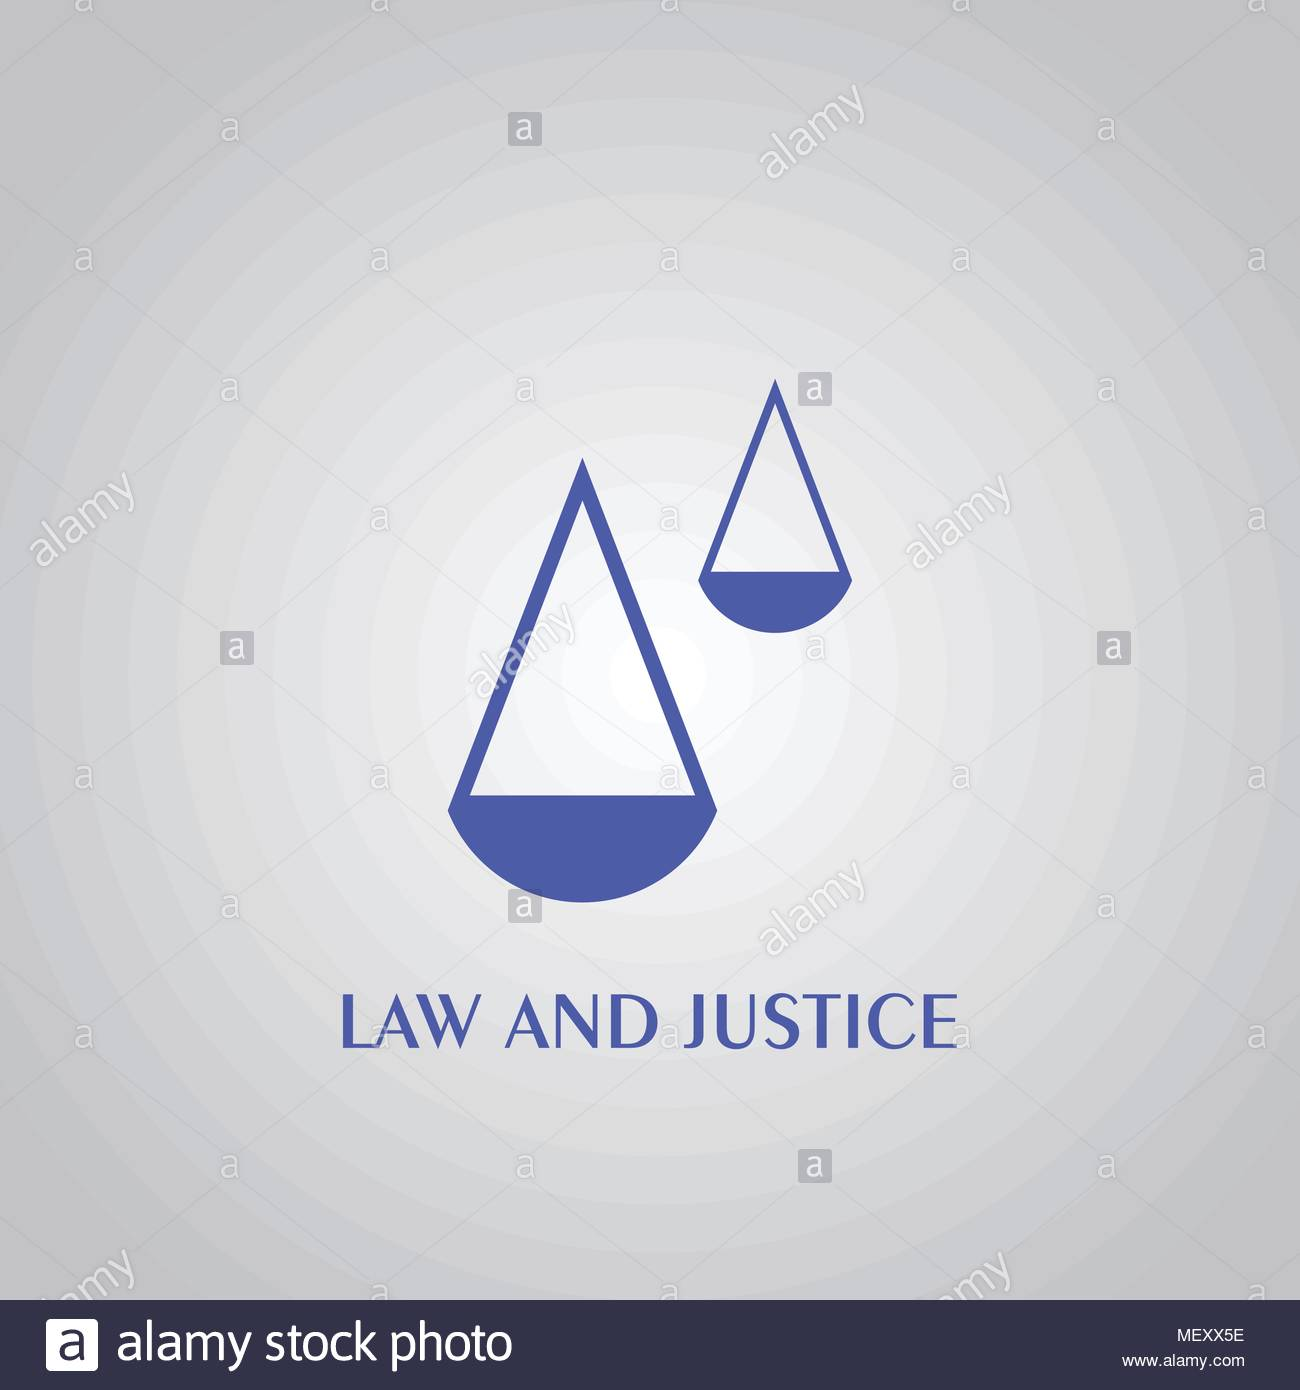 Law and justice logo, simple design, vector icons. - Stock Vector